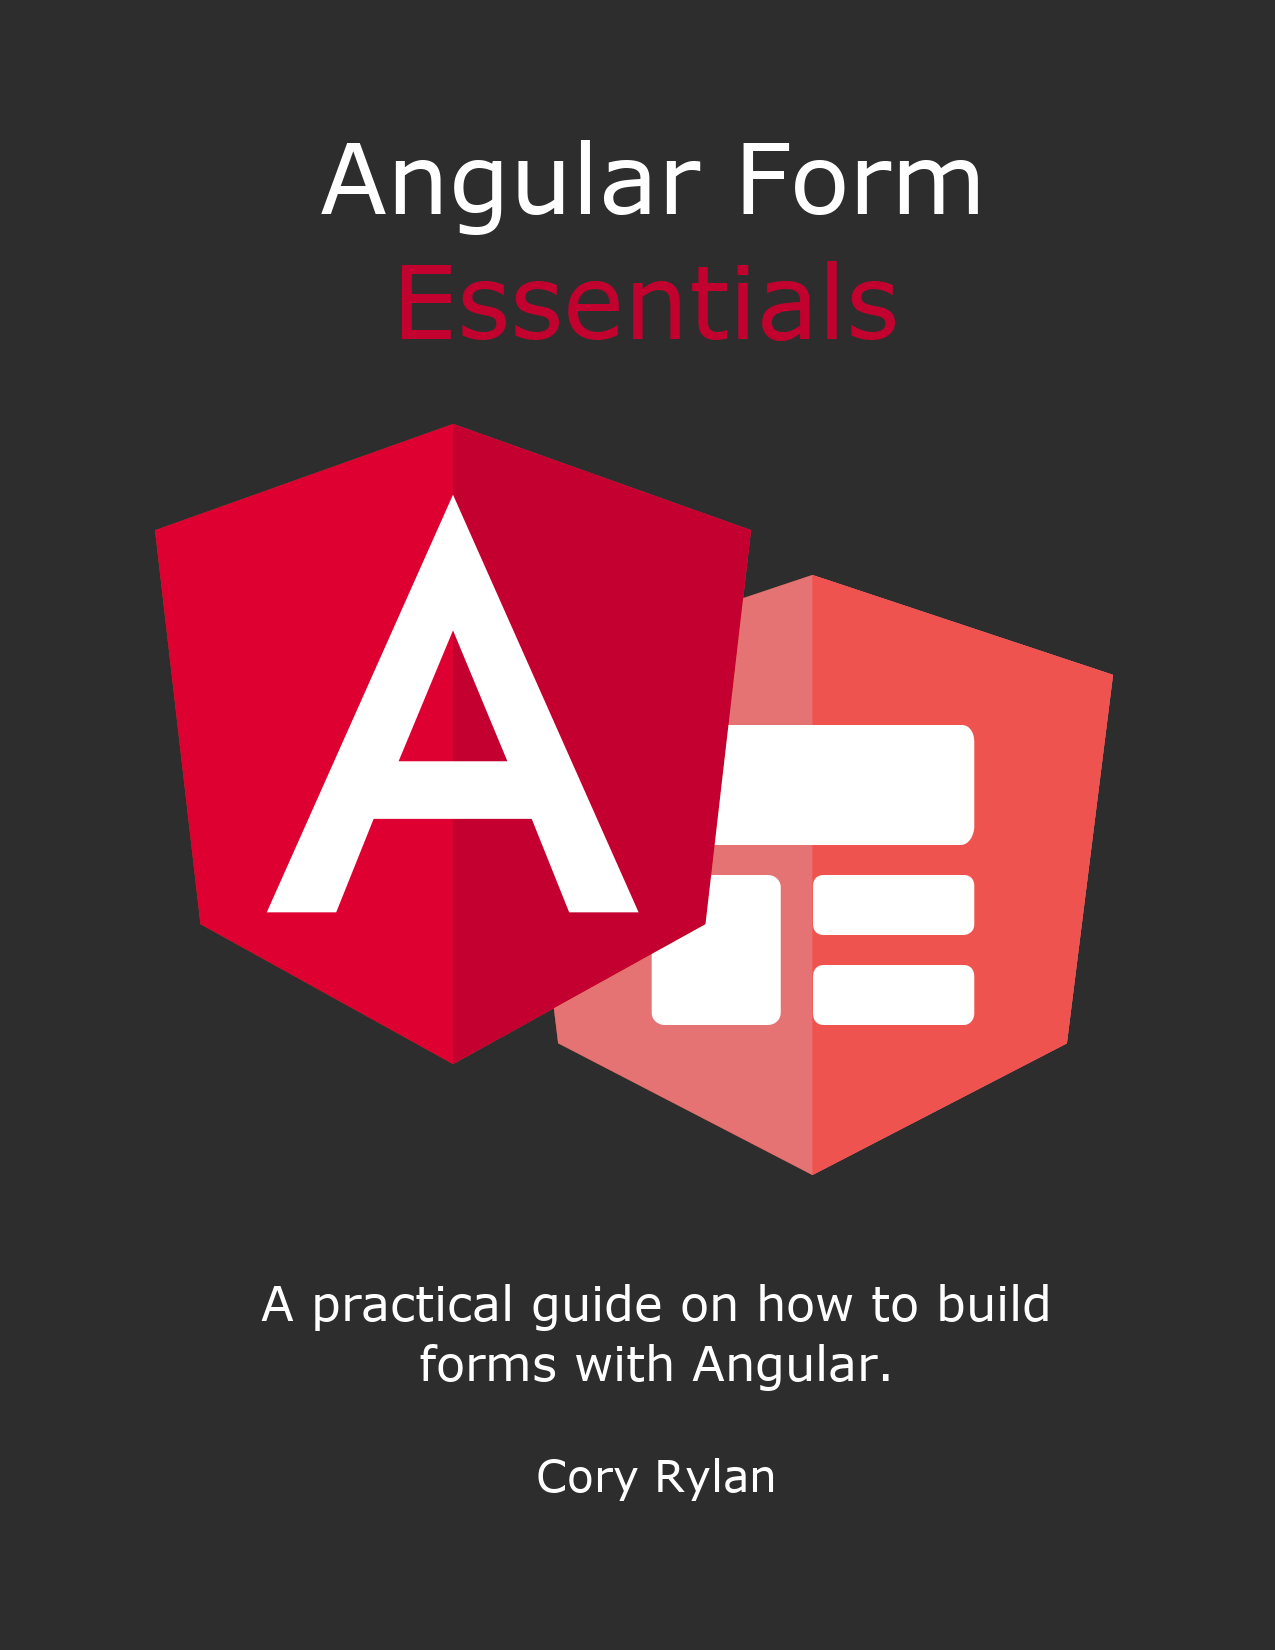 Using Web Components in Angular Forms